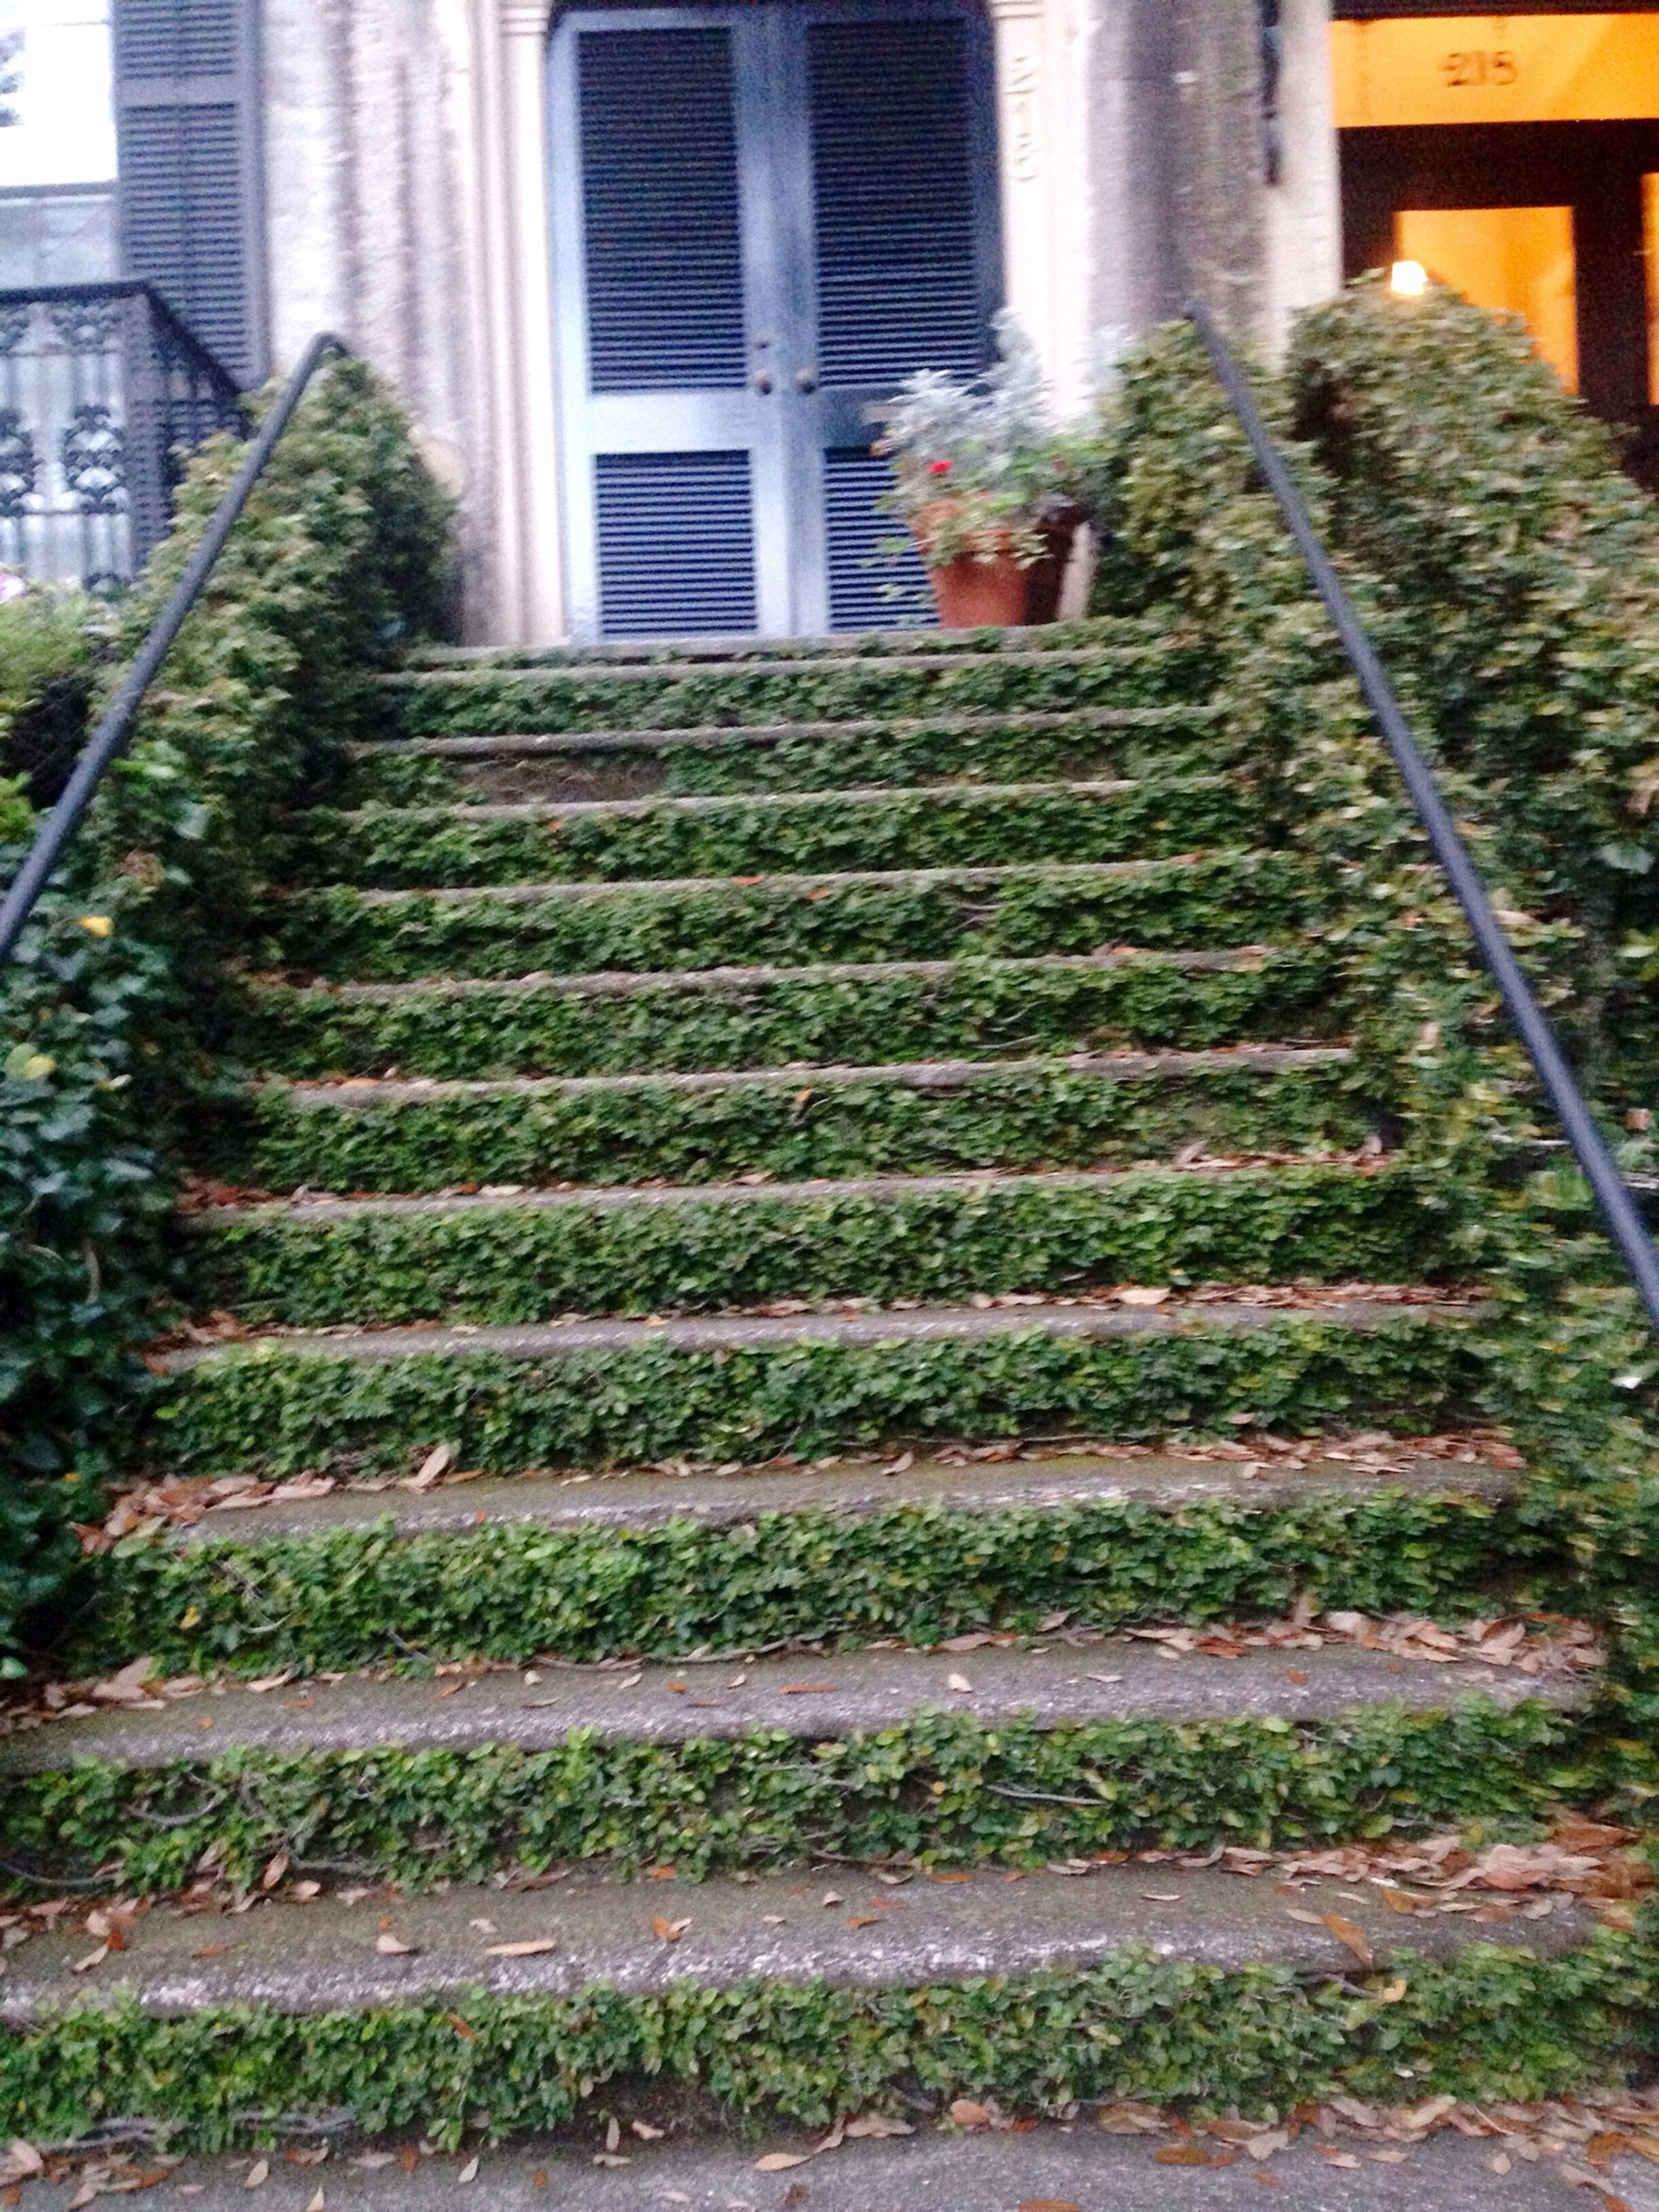 steps, architecture, built structure, building exterior, the way forward, steps and staircases, staircase, diminishing perspective, transportation, railing, vanishing point, day, outdoors, building, railroad track, no people, sunlight, house, plant, leading